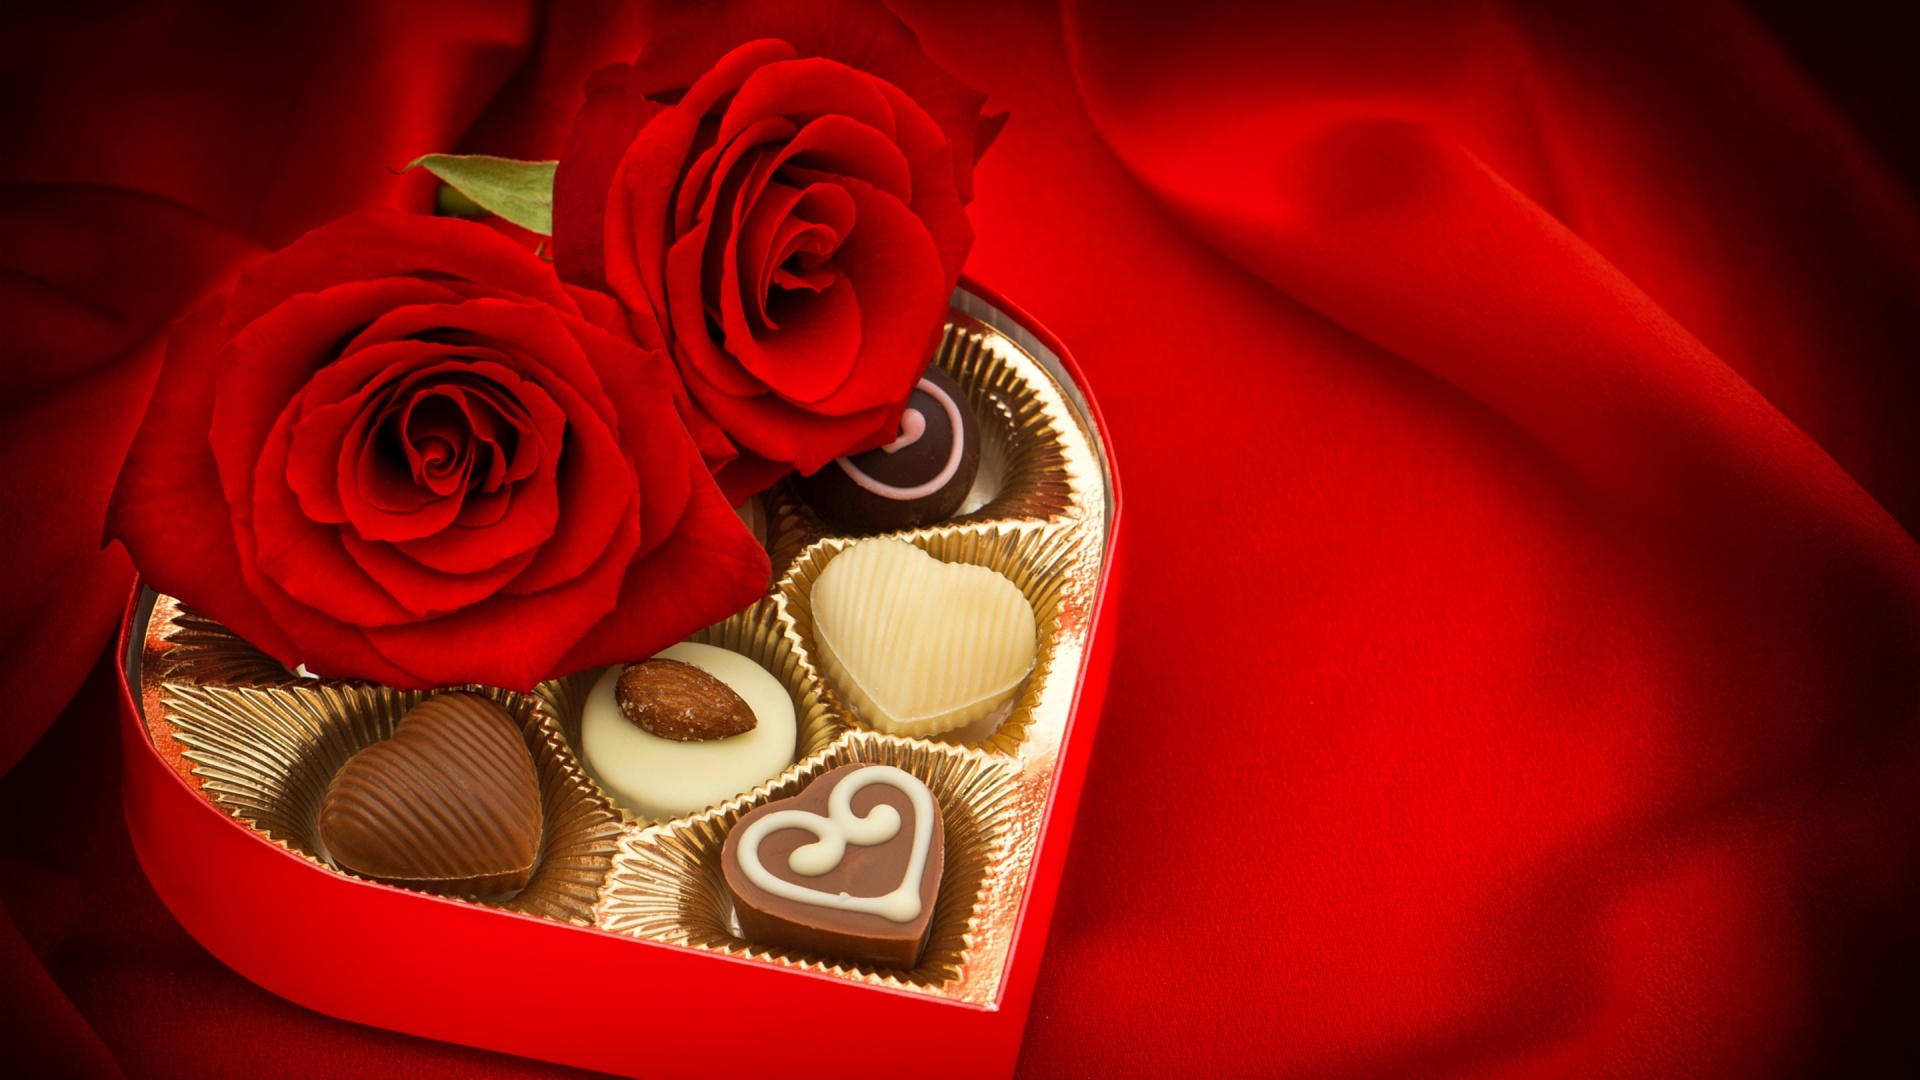 Download Hd Christmas Wallpapers Valentines Day Candy And Chocolate Wallpapers 1920x1080